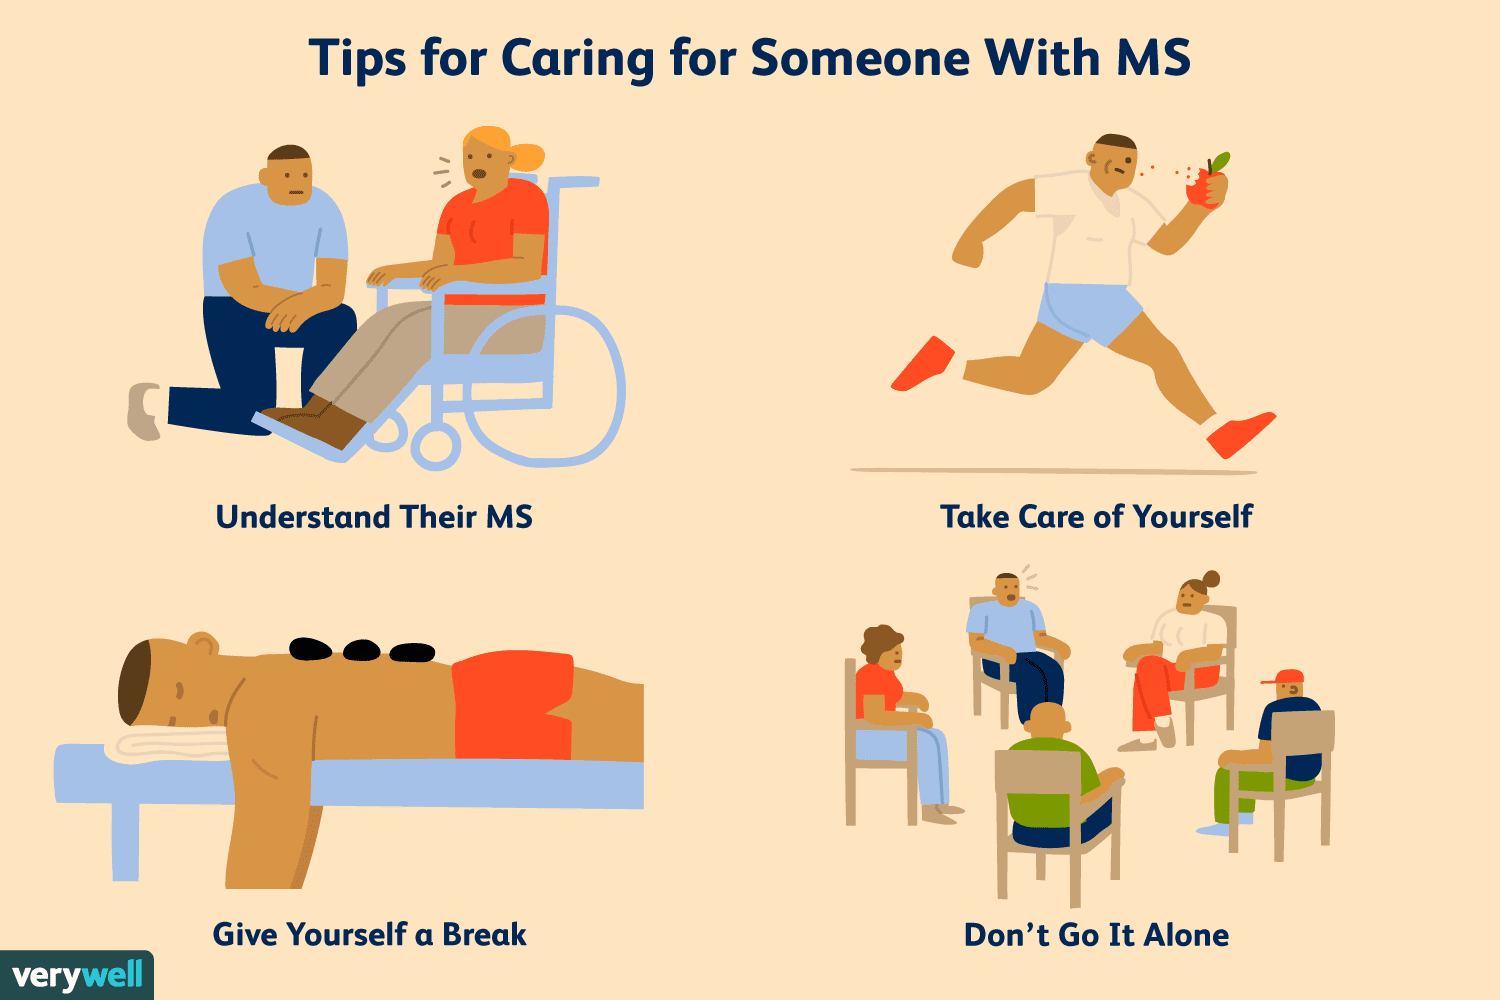 Tips for Caring for Someone With MS